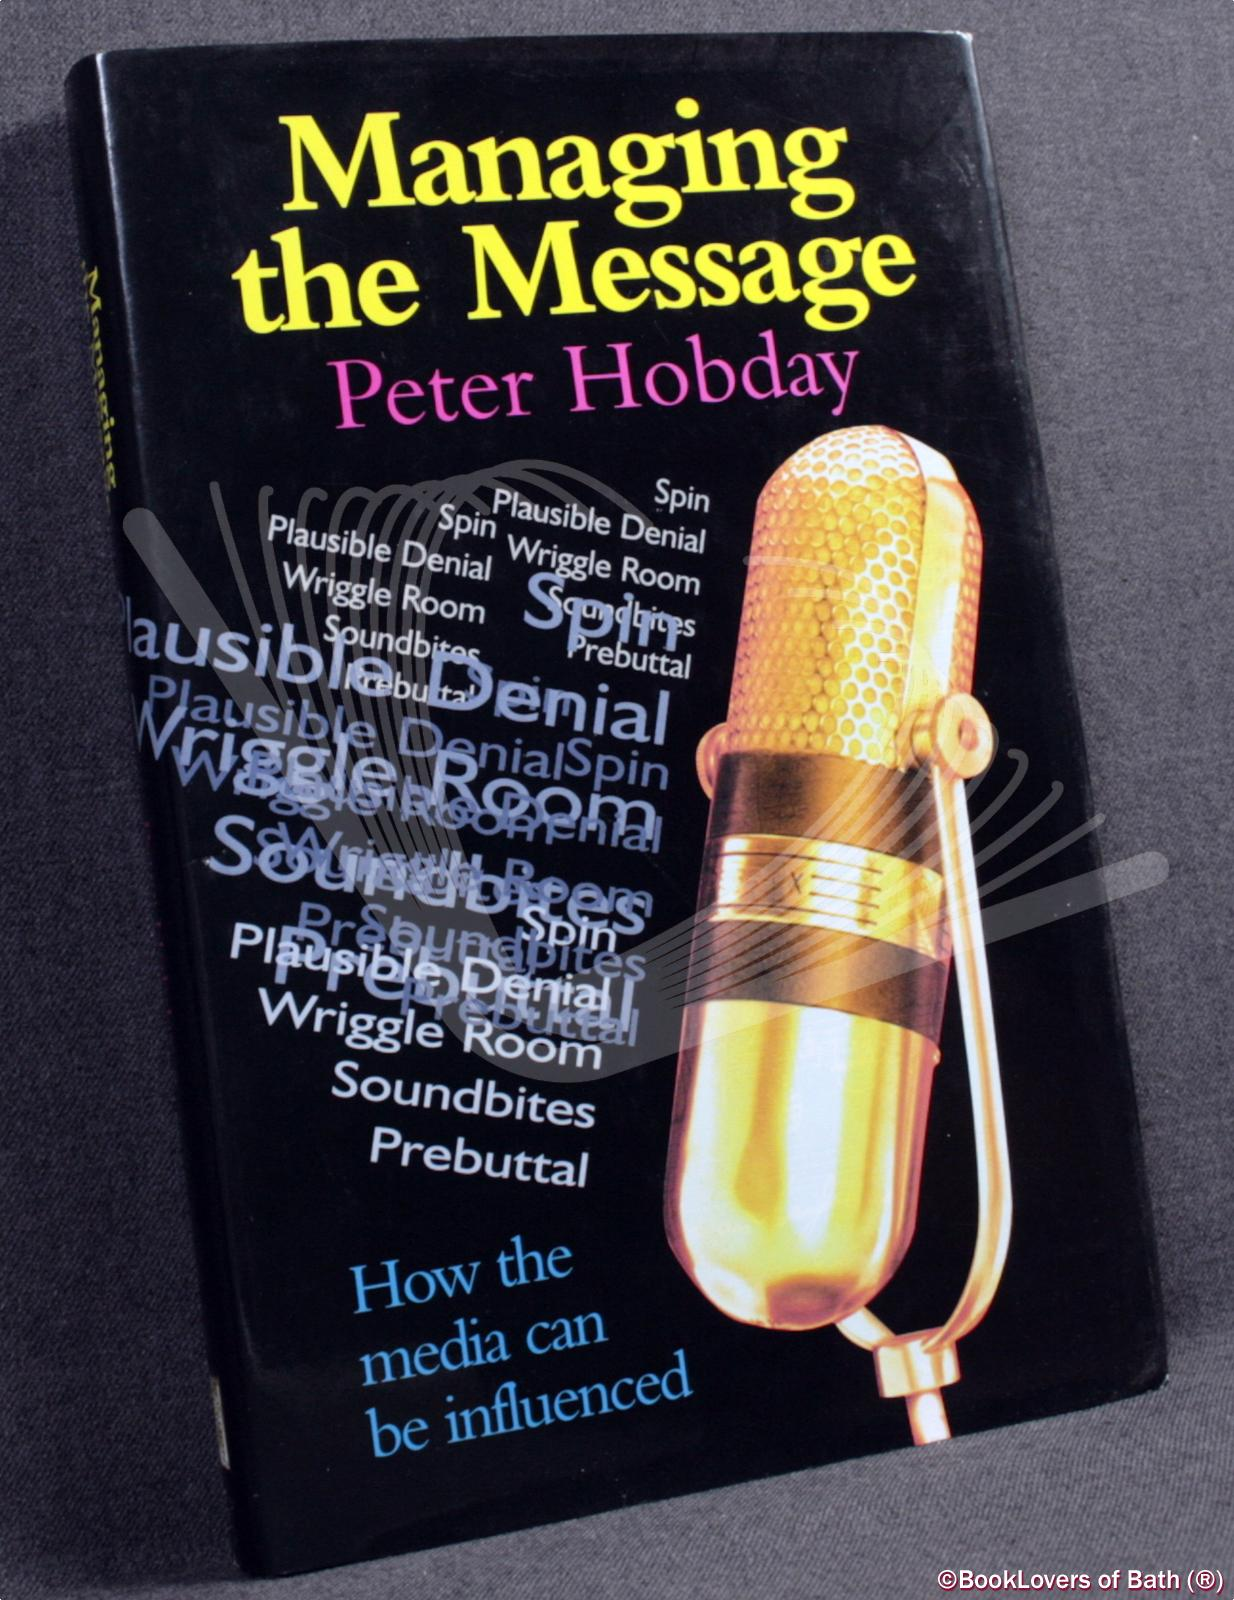 Managing the Message - Peter Hobday